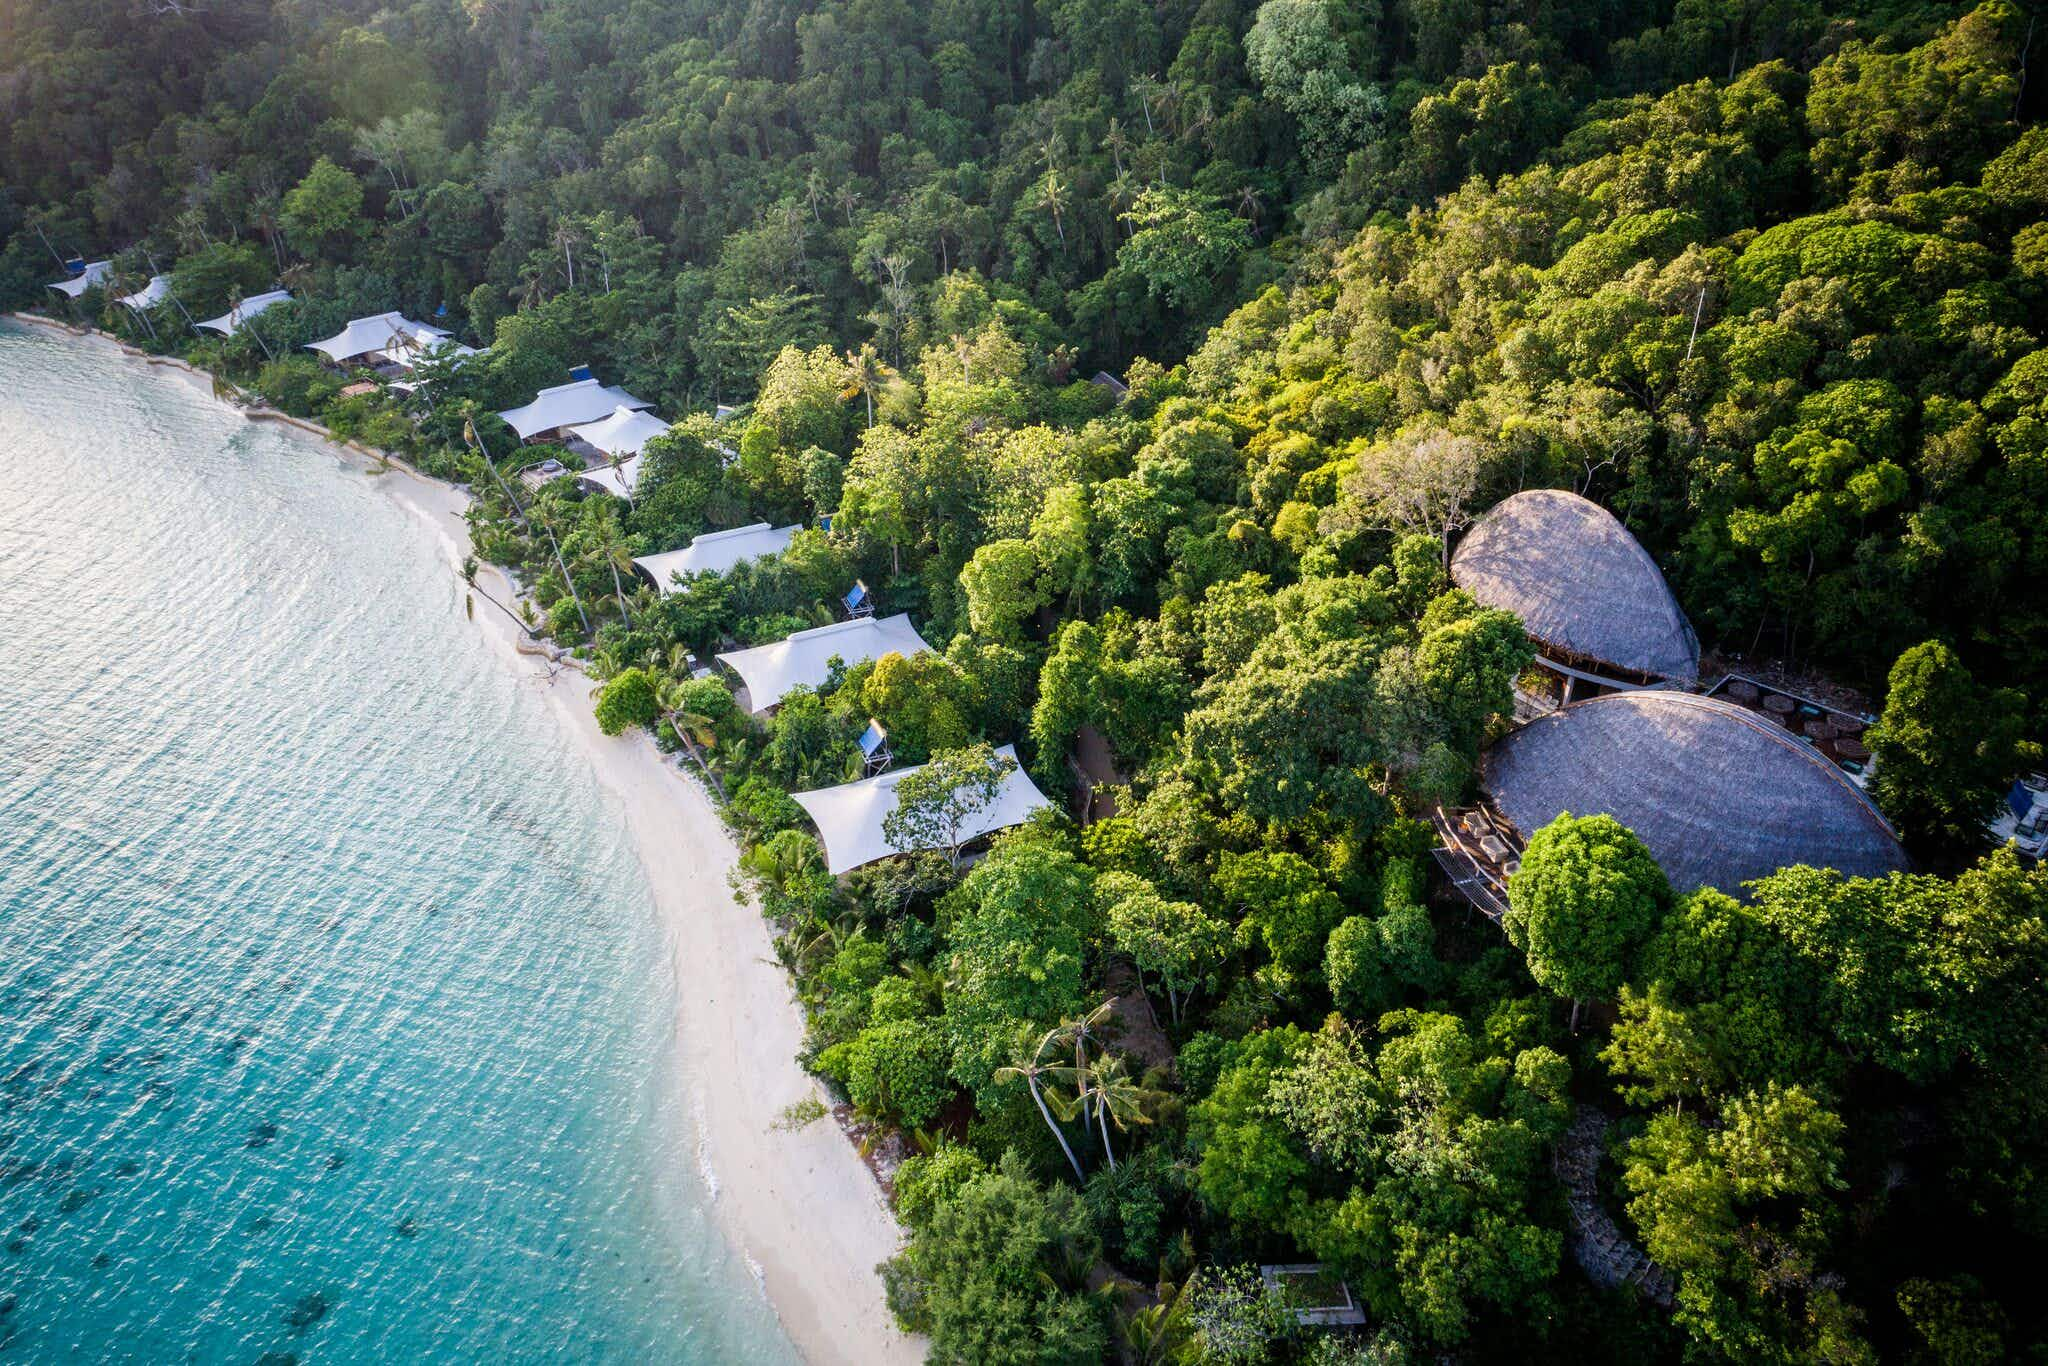 Hop on an amphibious seaplane to travel to this private Indonesian island retreat